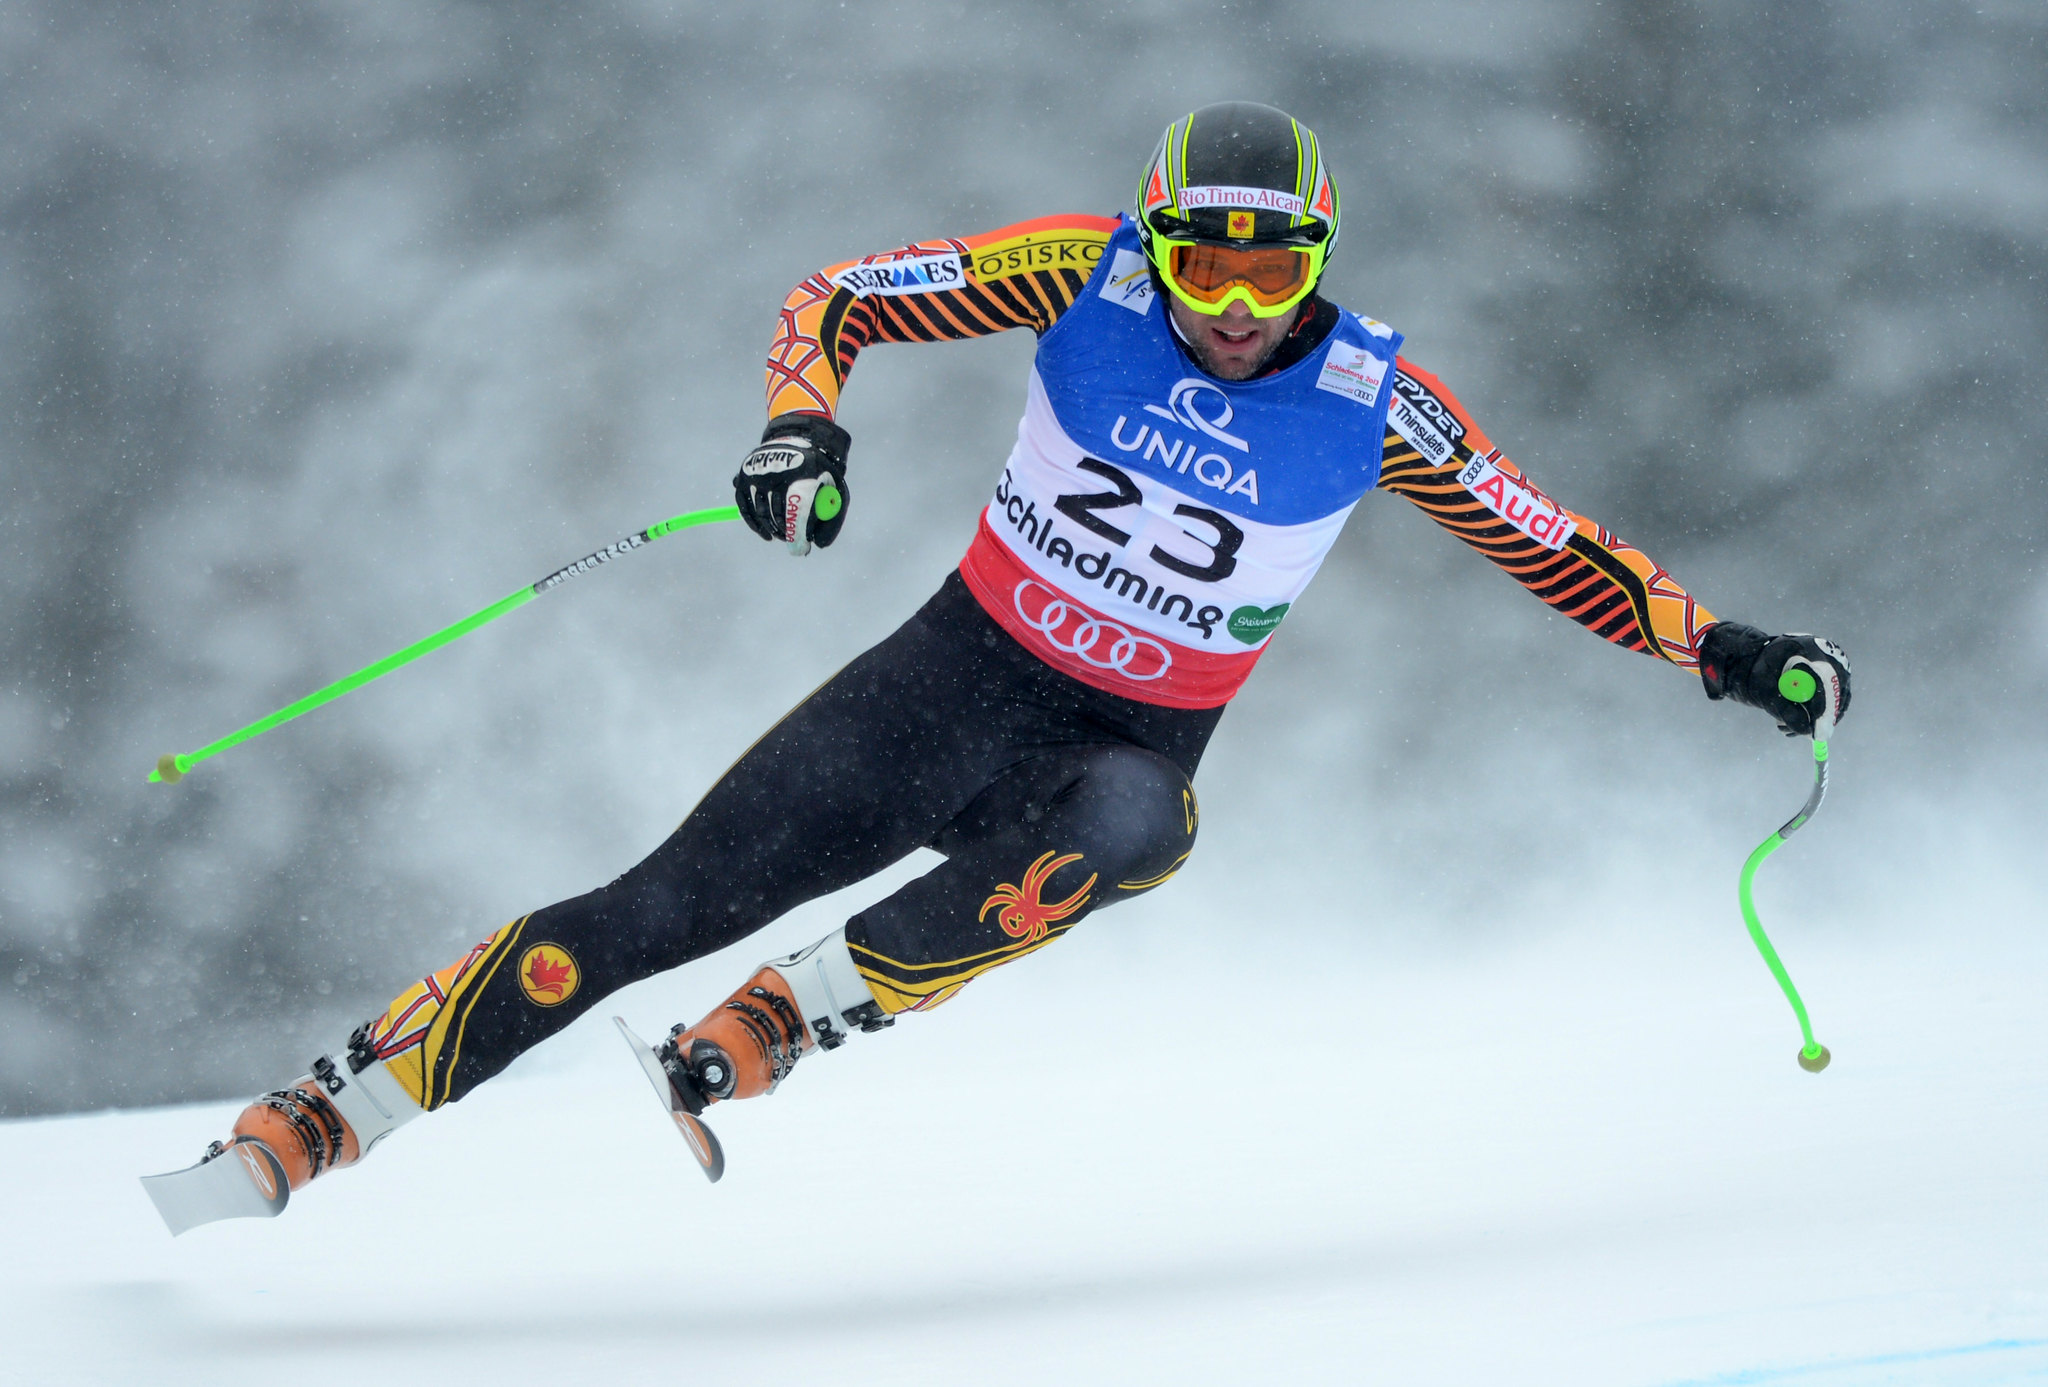 Manuel Osborne-Paradis in action at the world championships in Schladming, Austria.